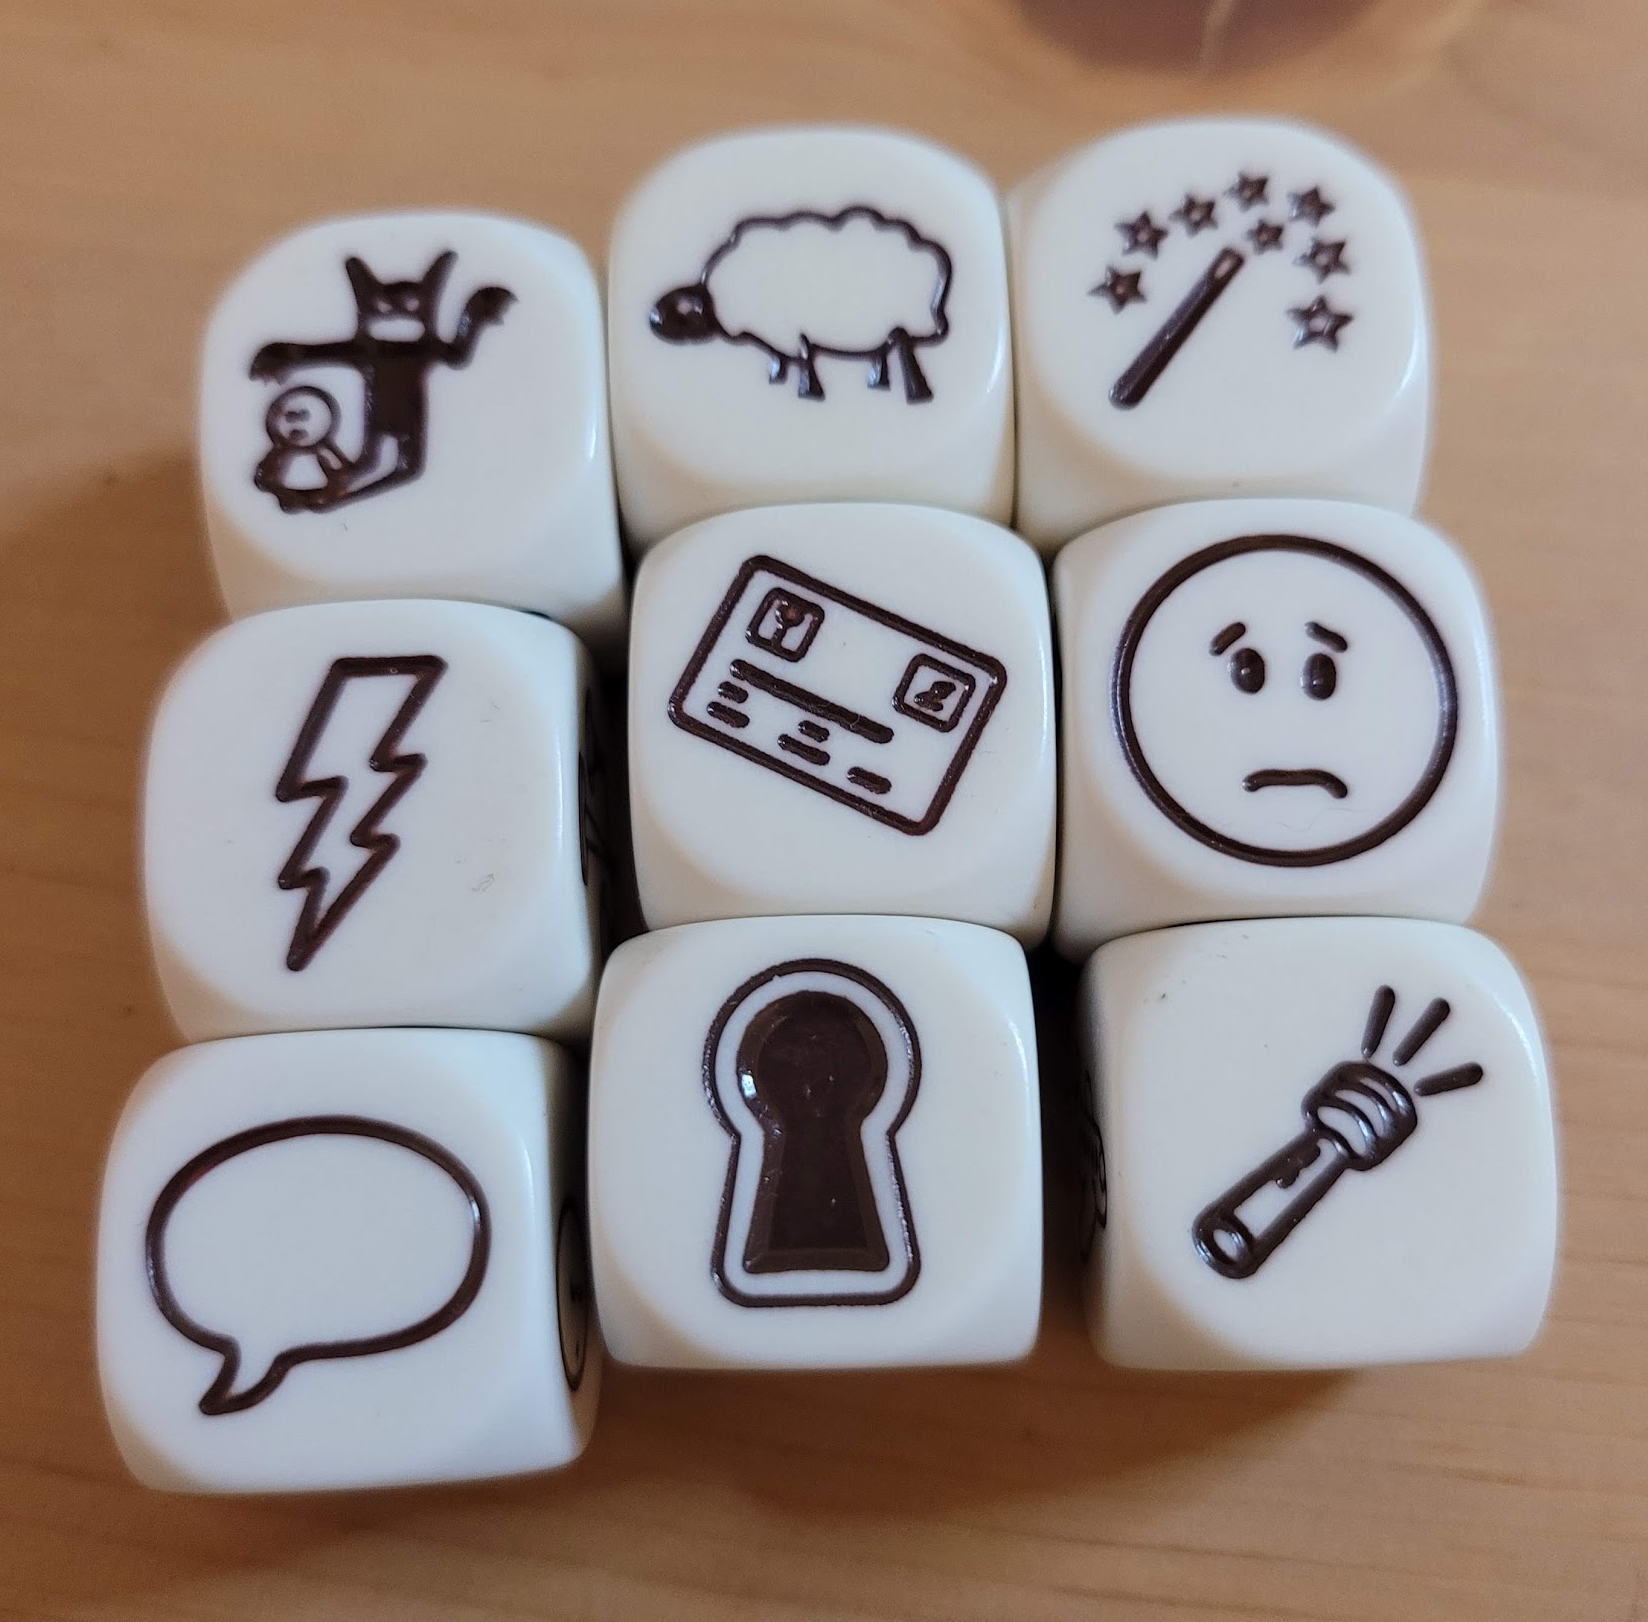 dice with different images